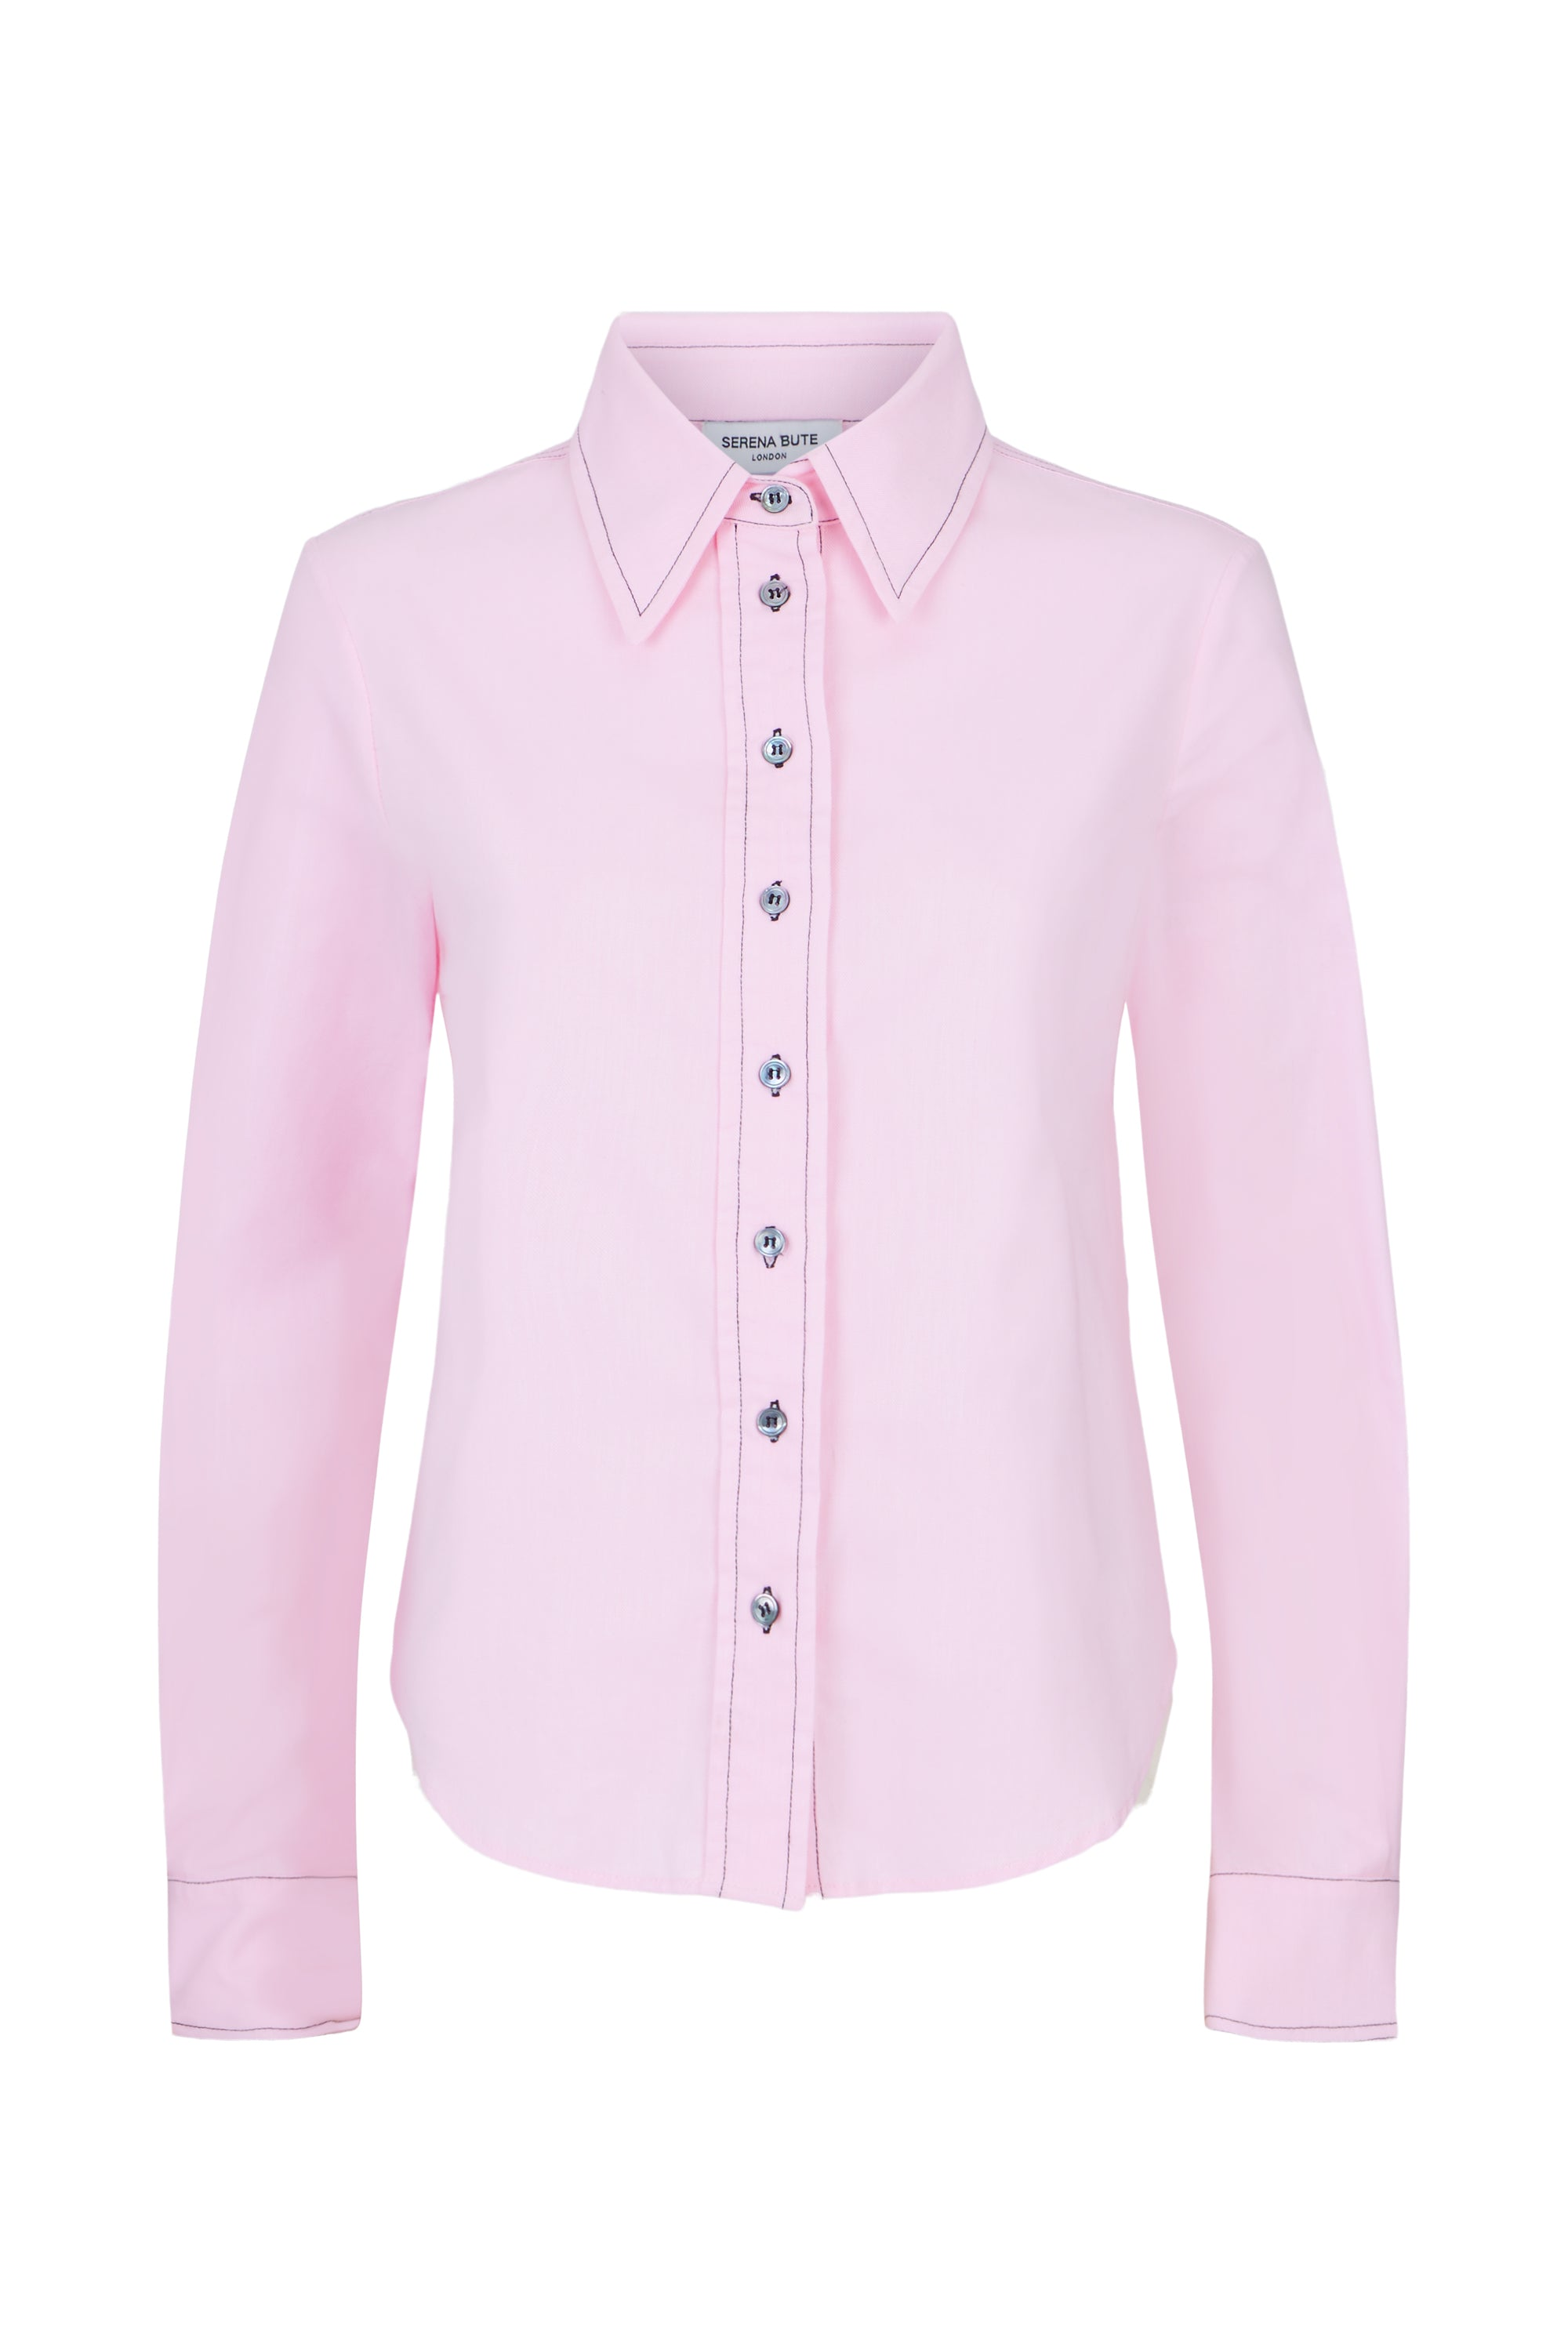 The Serena Shirt - Pale Pink Brushed Cotton - SERENA BUTE